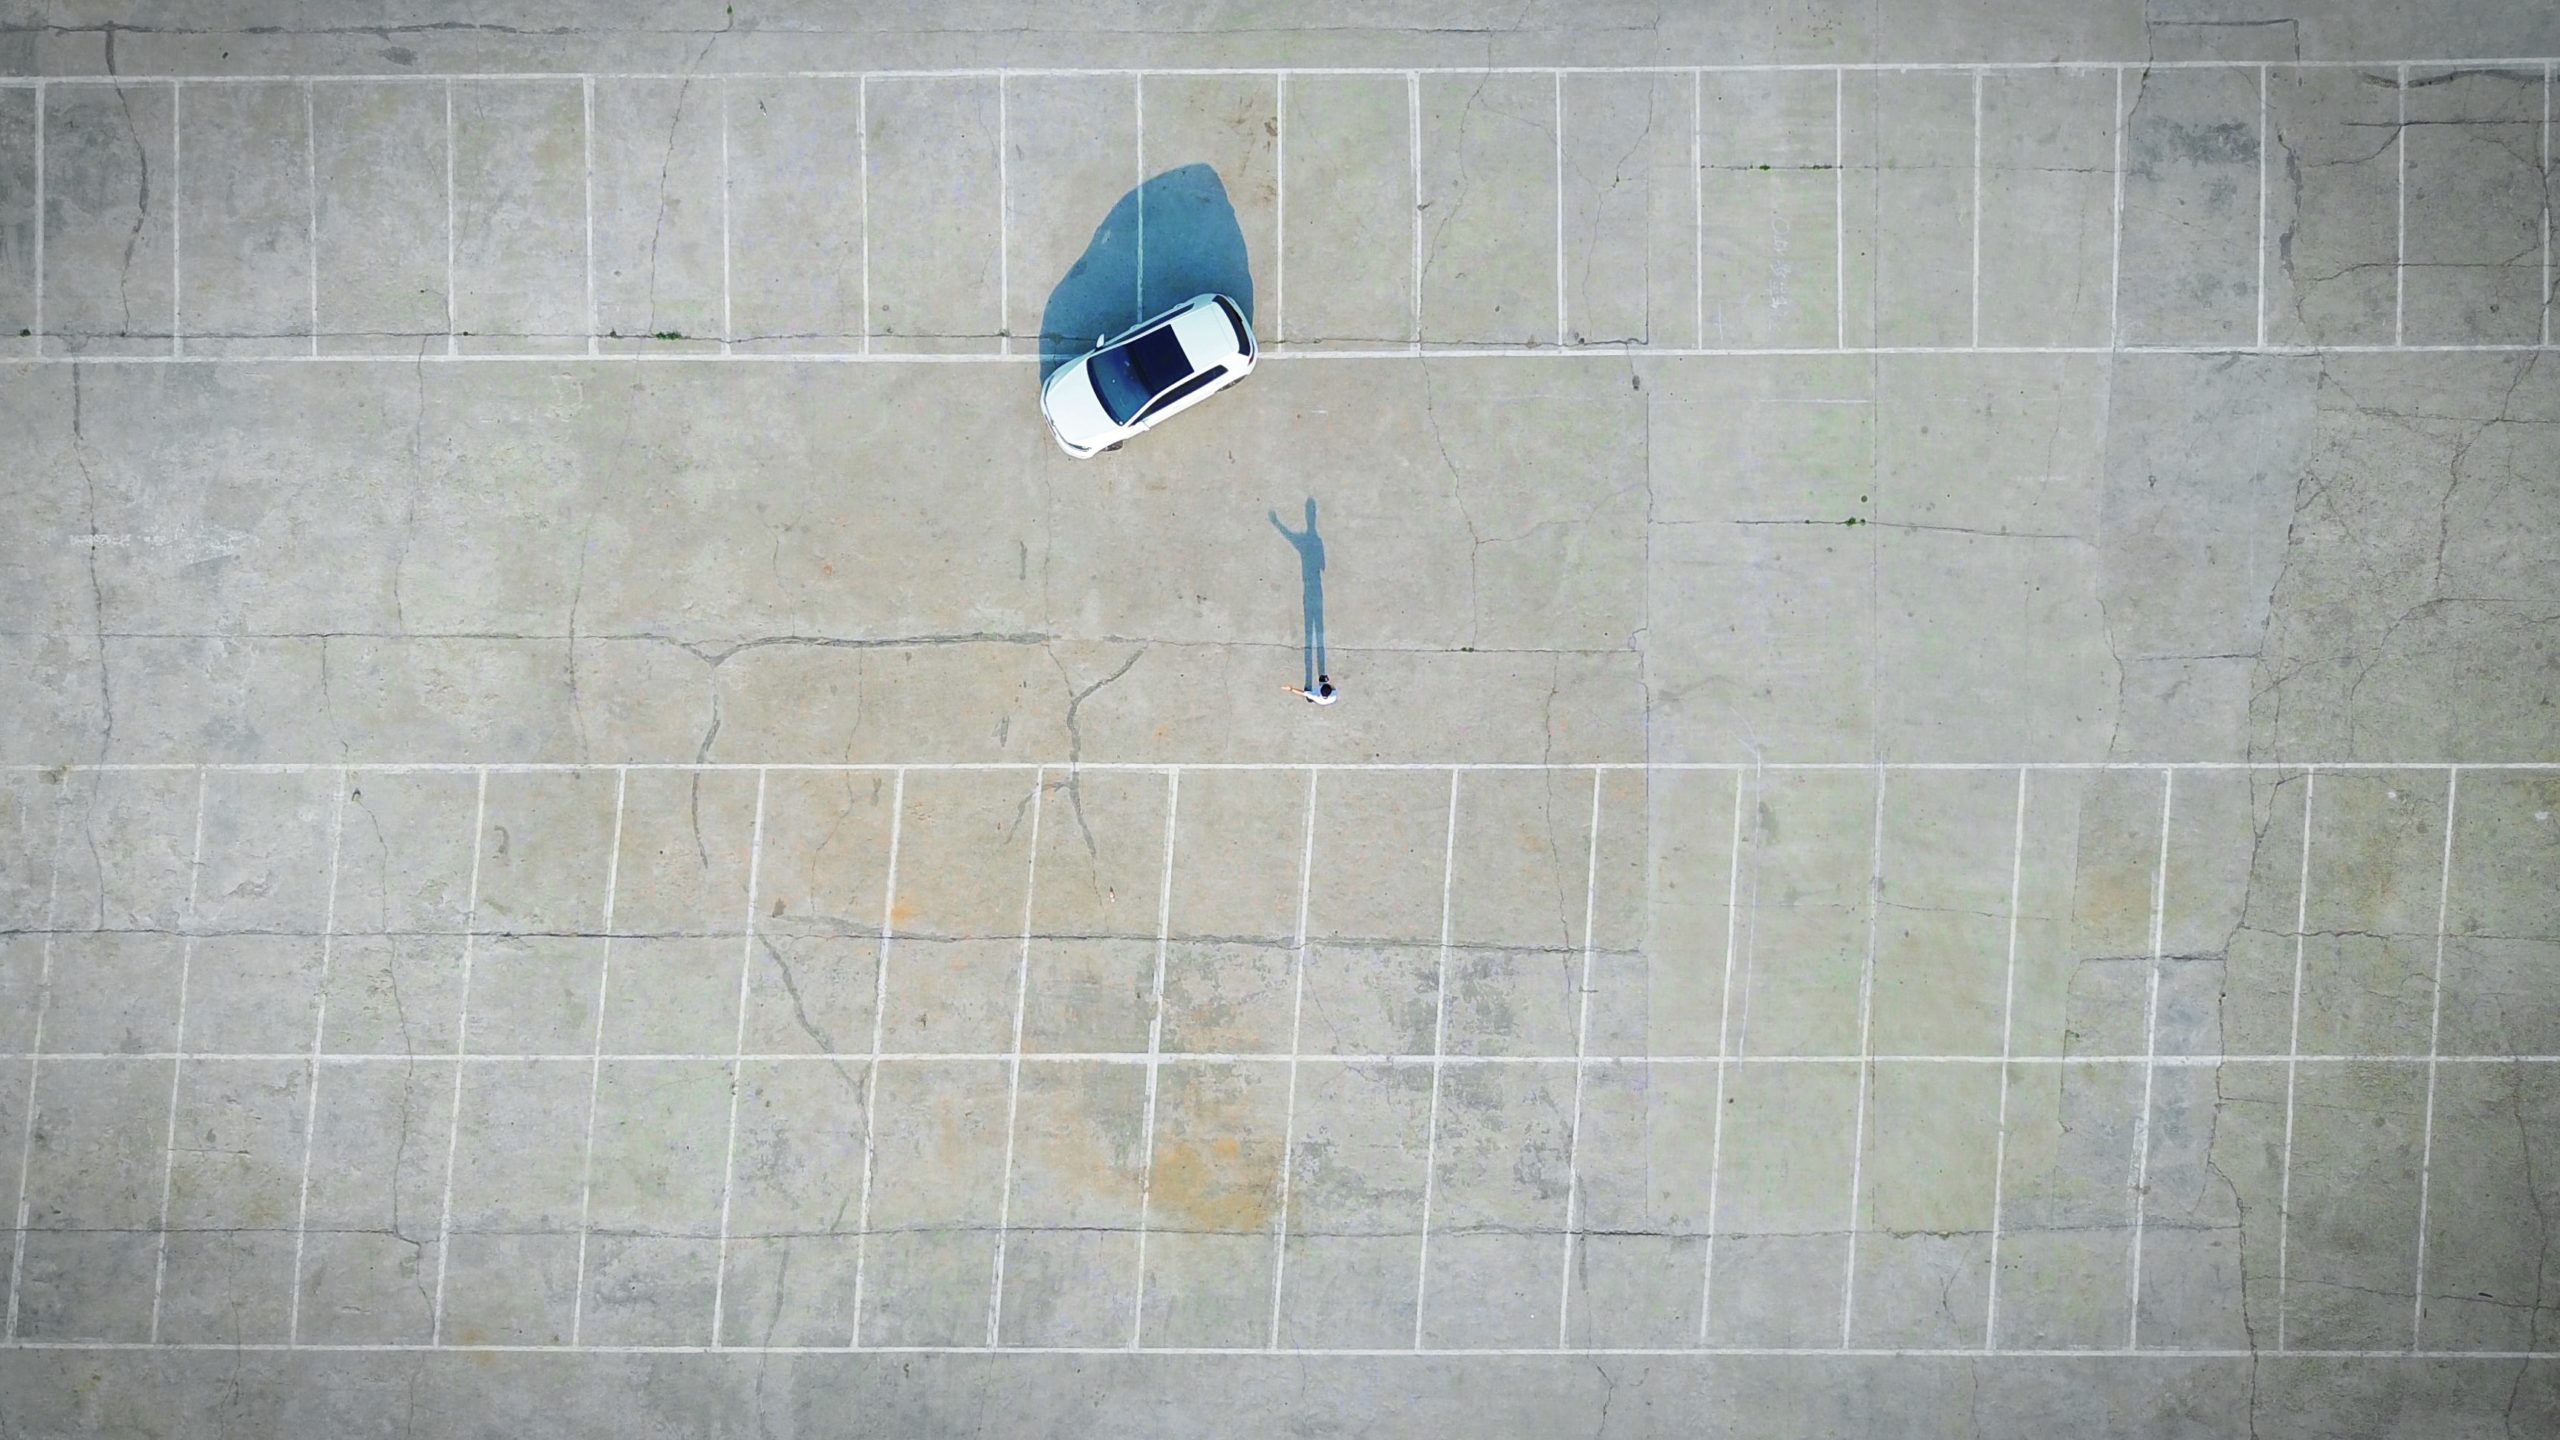 empty car lot - ideal property to turn into affordable housing in california